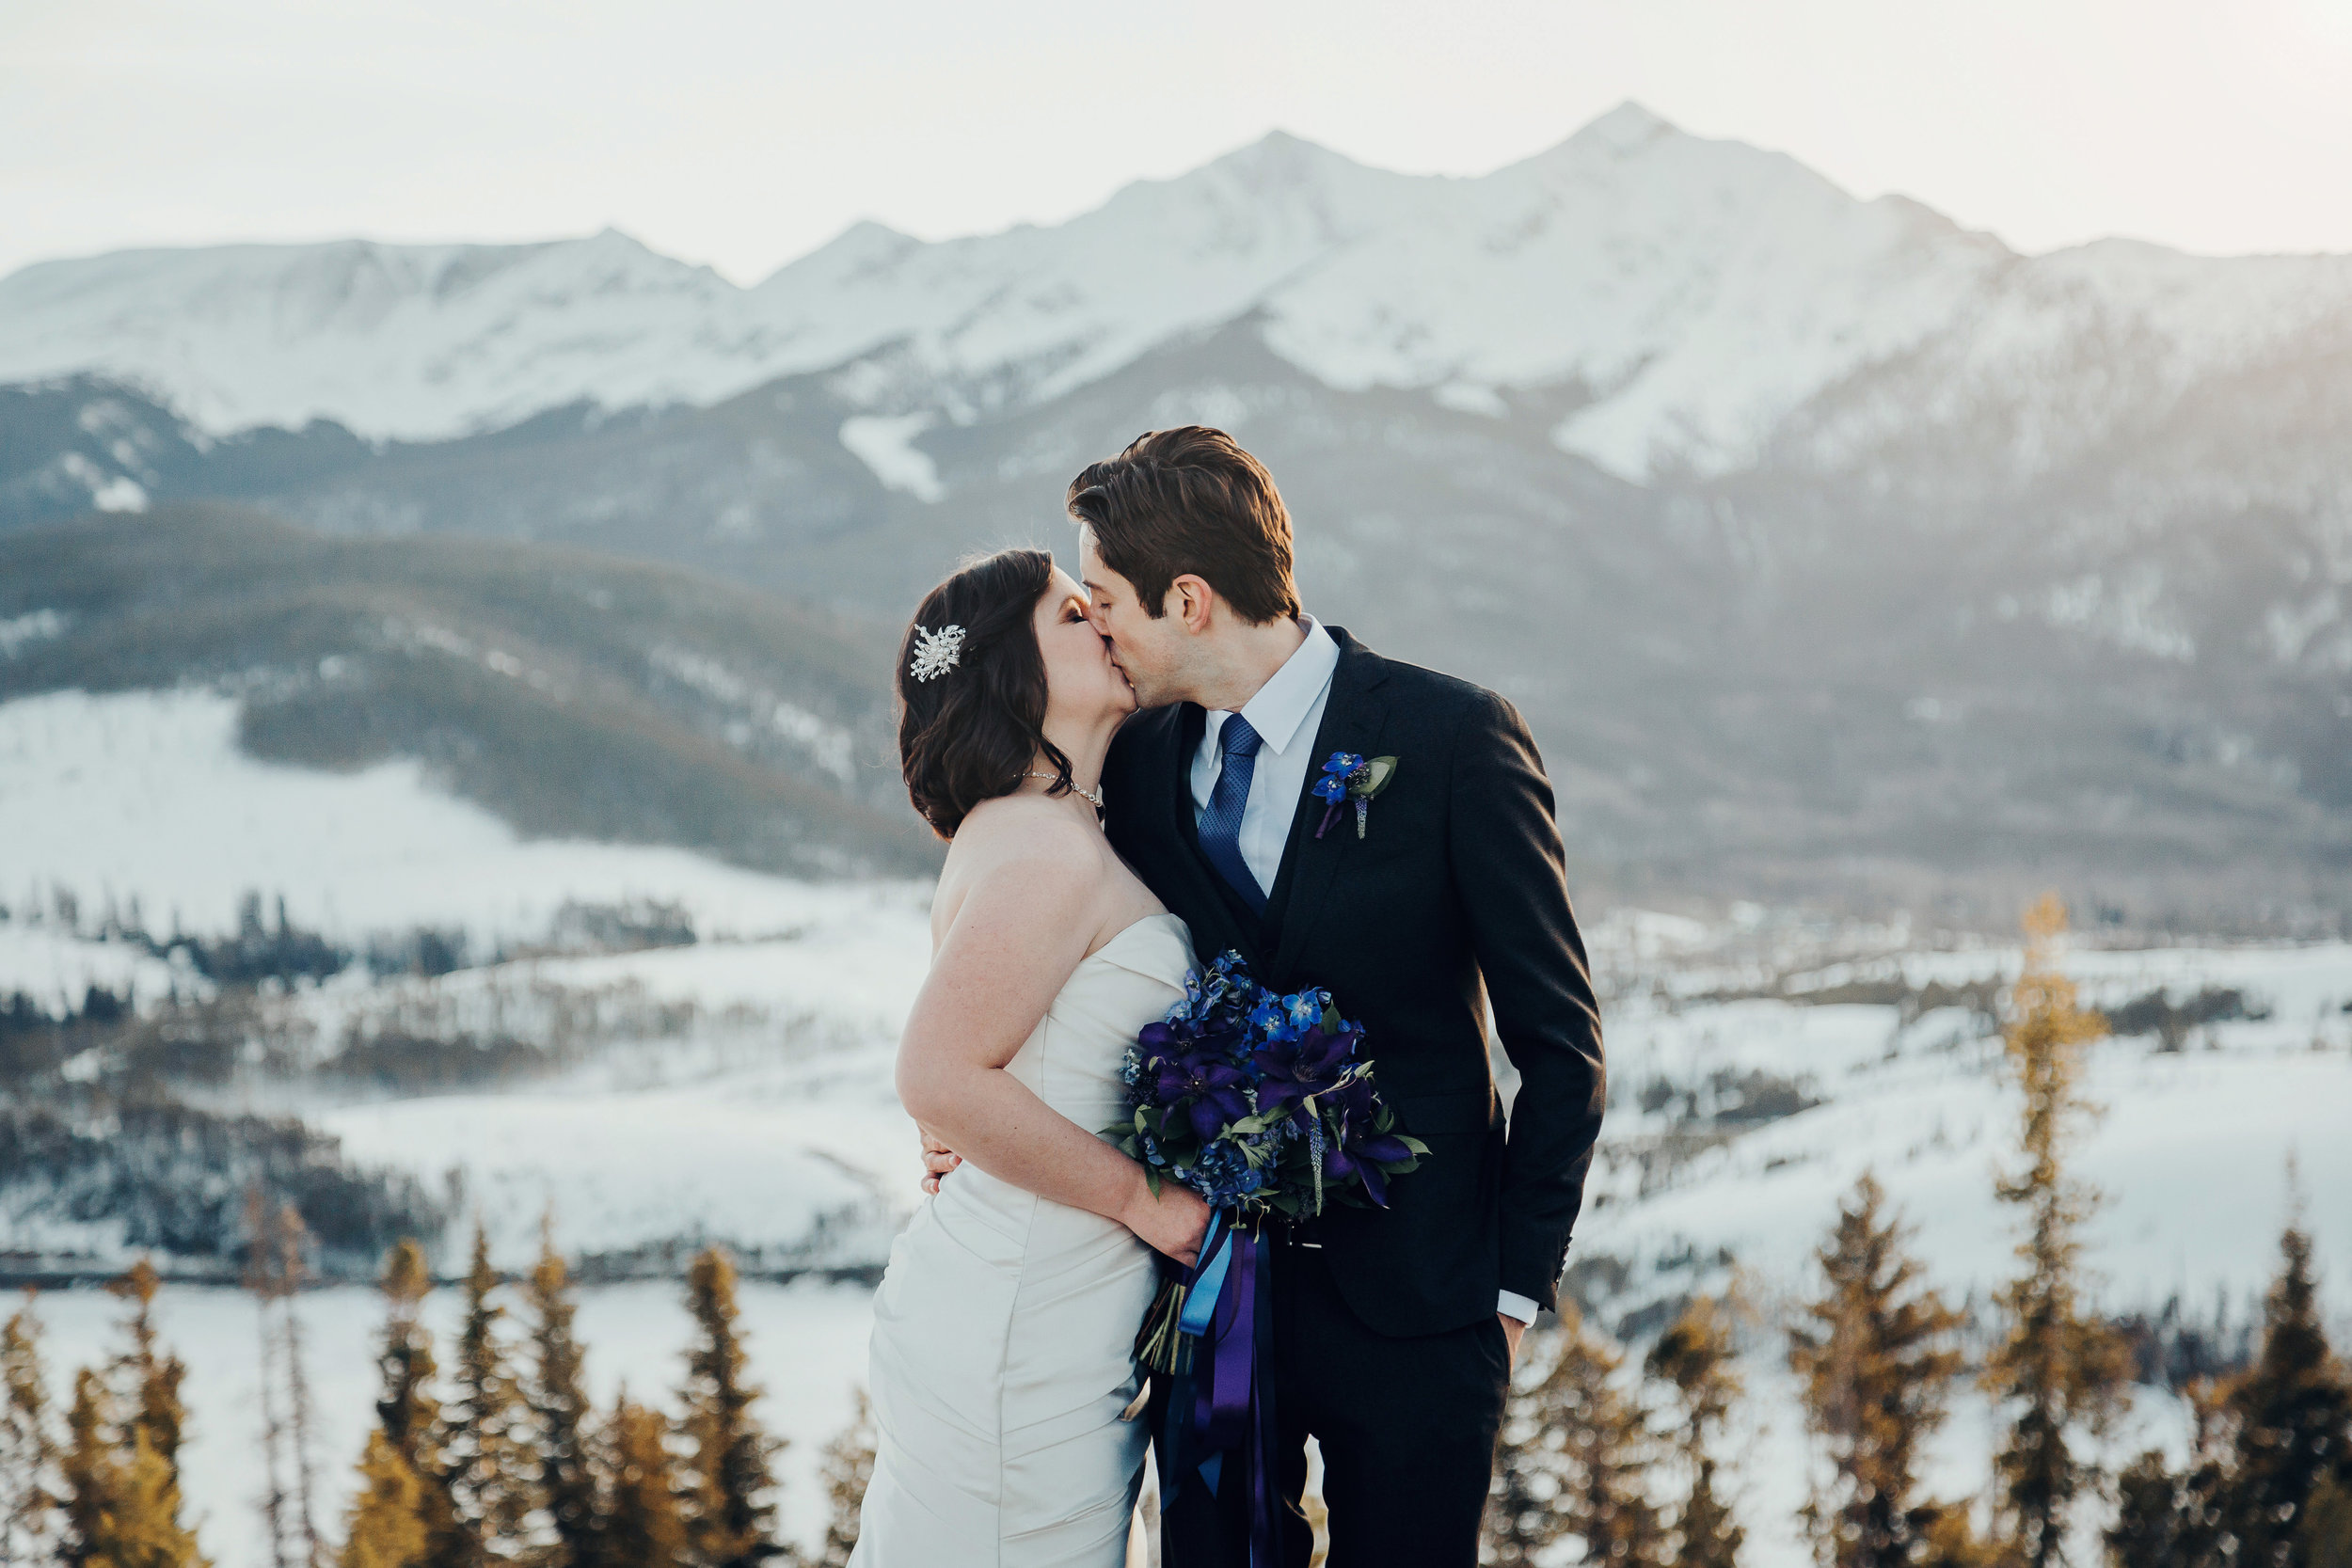 Robyn and Jonathan's Colorado Mountain Wedding